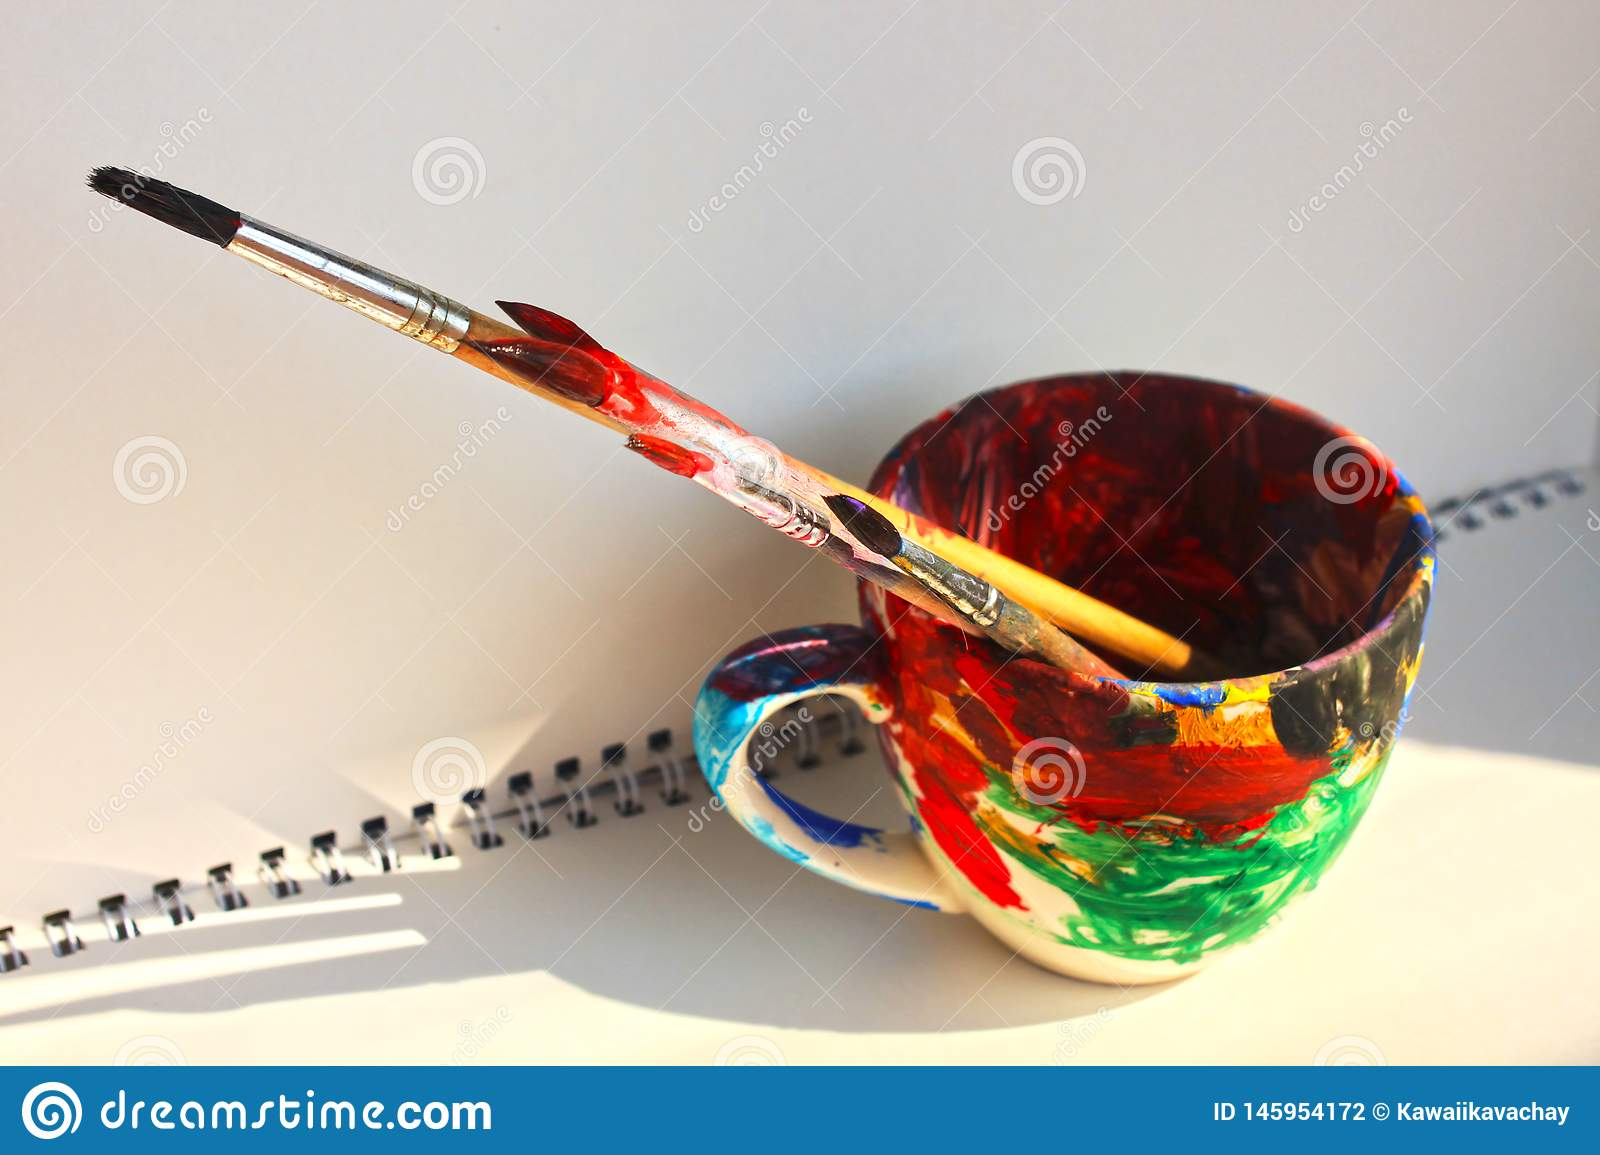 Art Paint Brushes In A Cup With Empty Space For Text Stock Photo Image Of Acrylic Creative 145954172